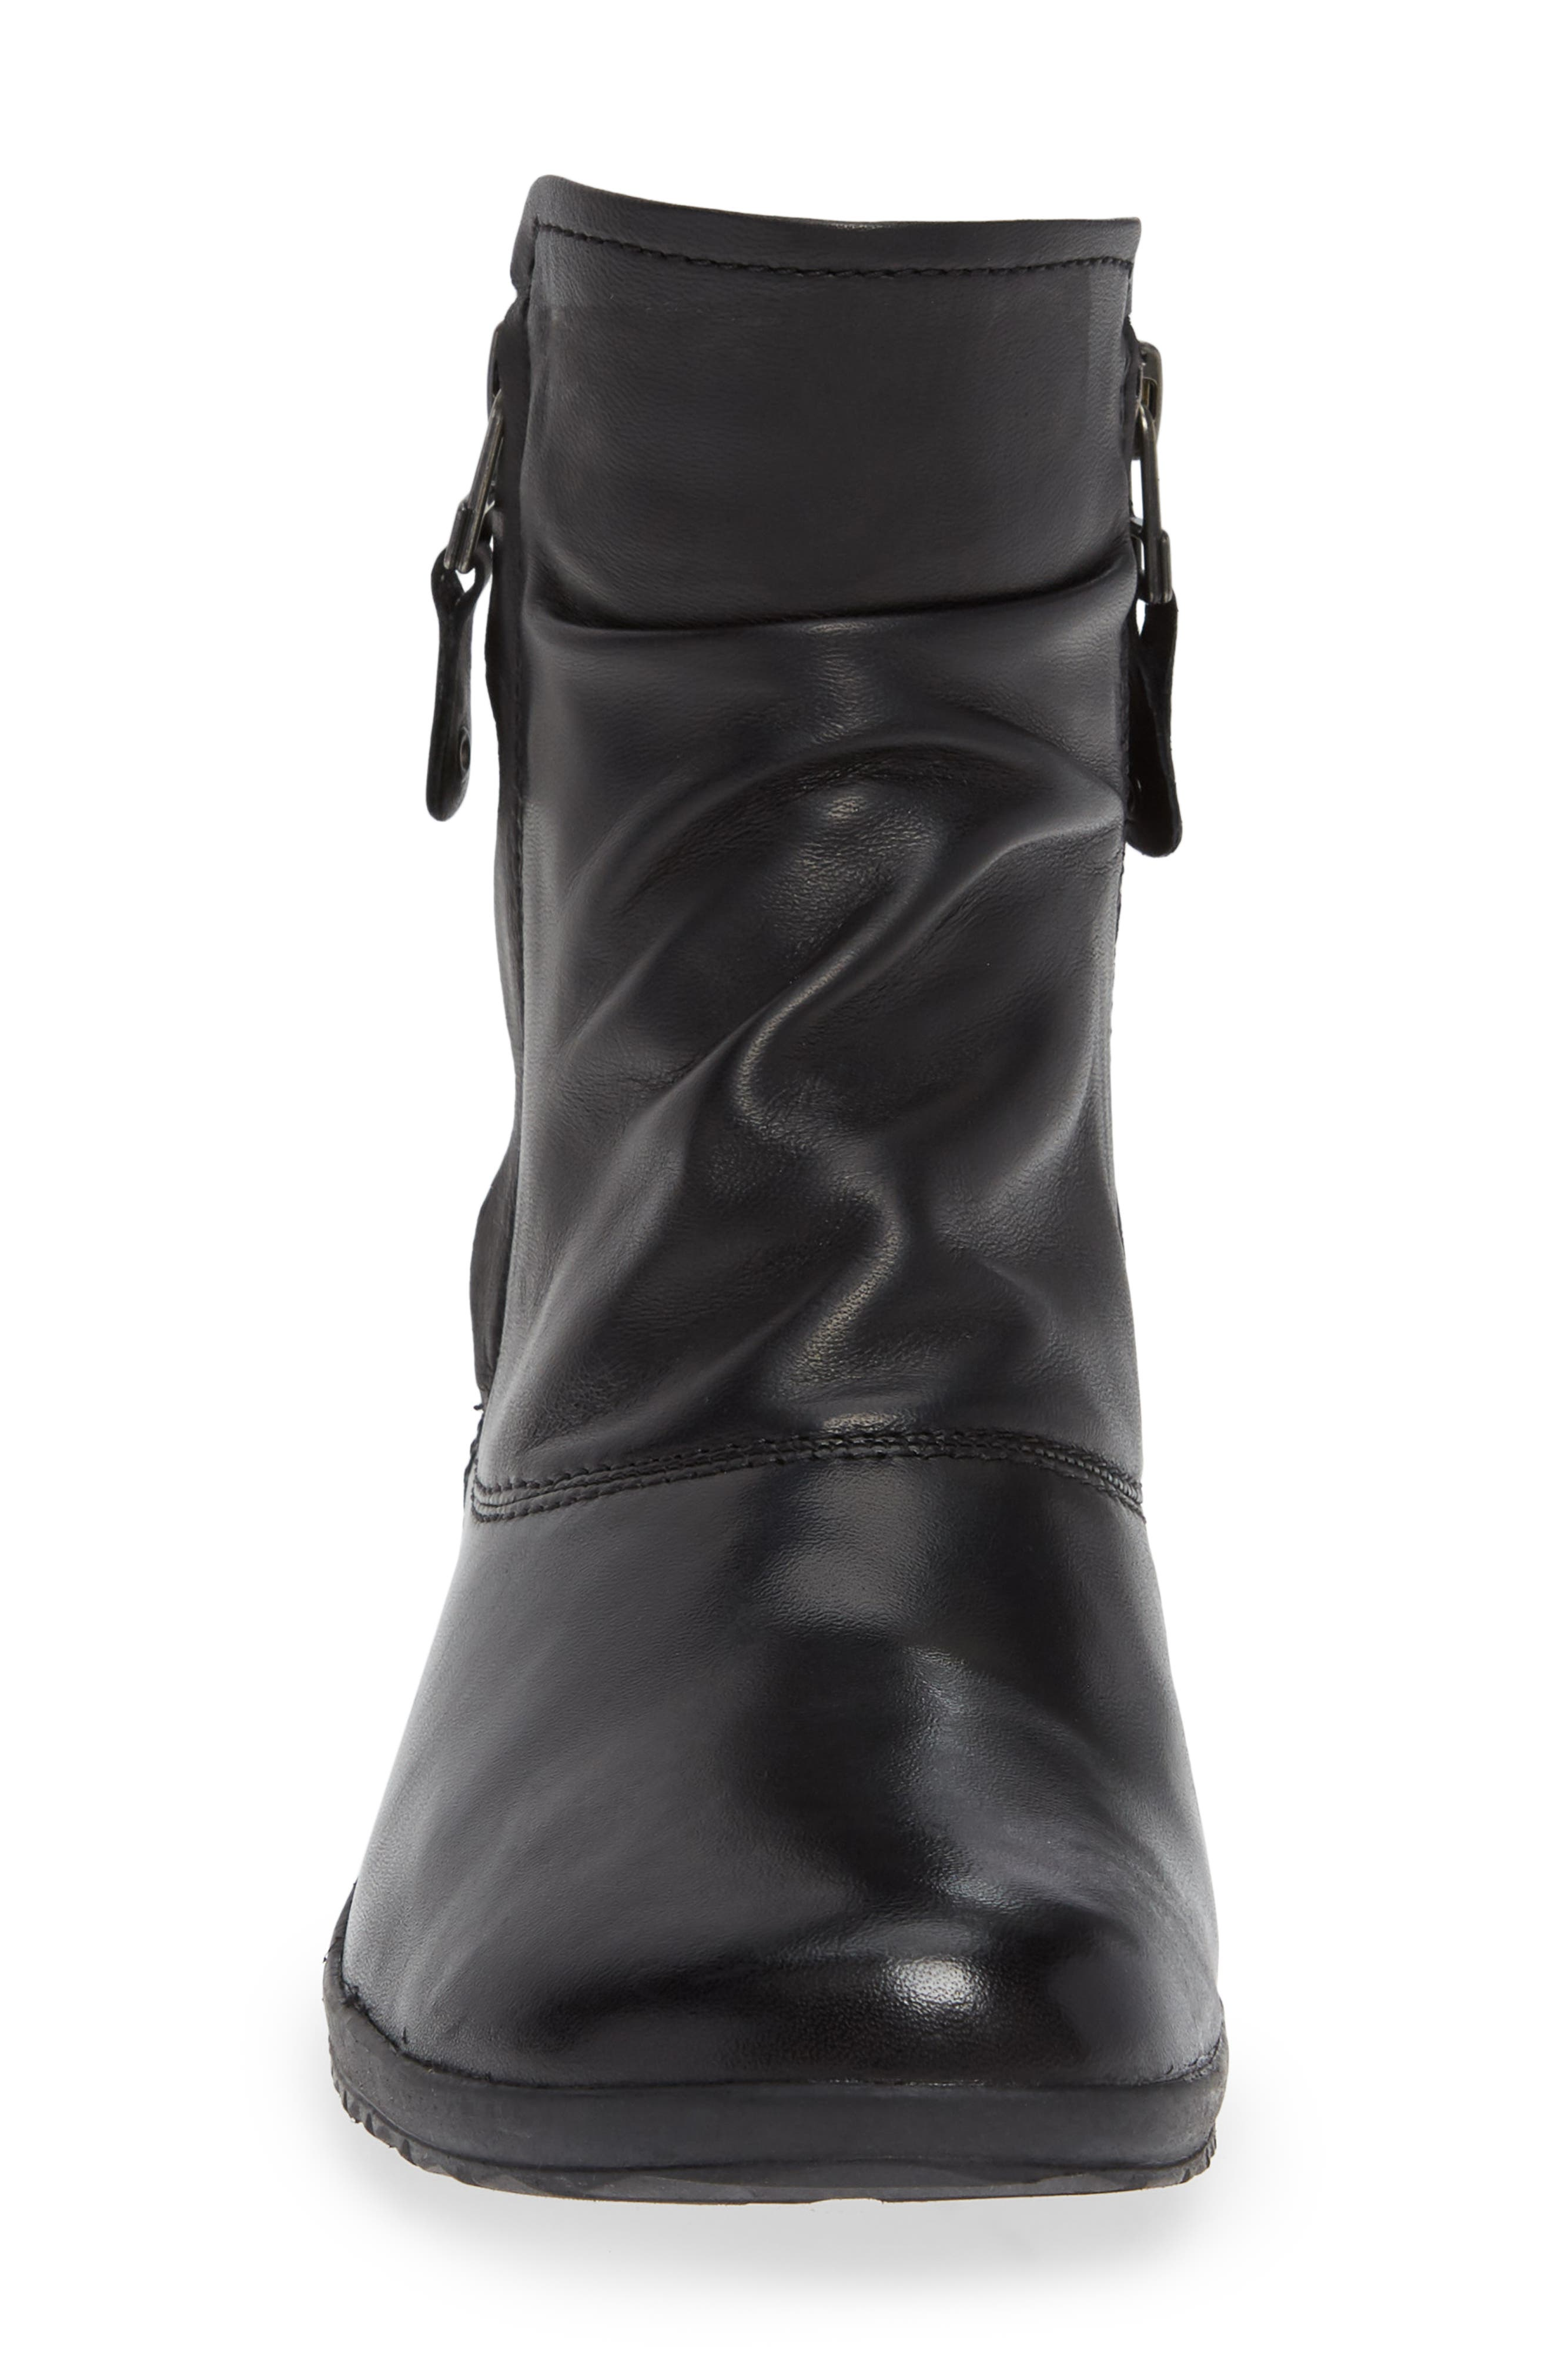 JOSEF SEIBEL,                             Naly 24 Bootie,                             Alternate thumbnail 4, color,                             BLACK LEATHER